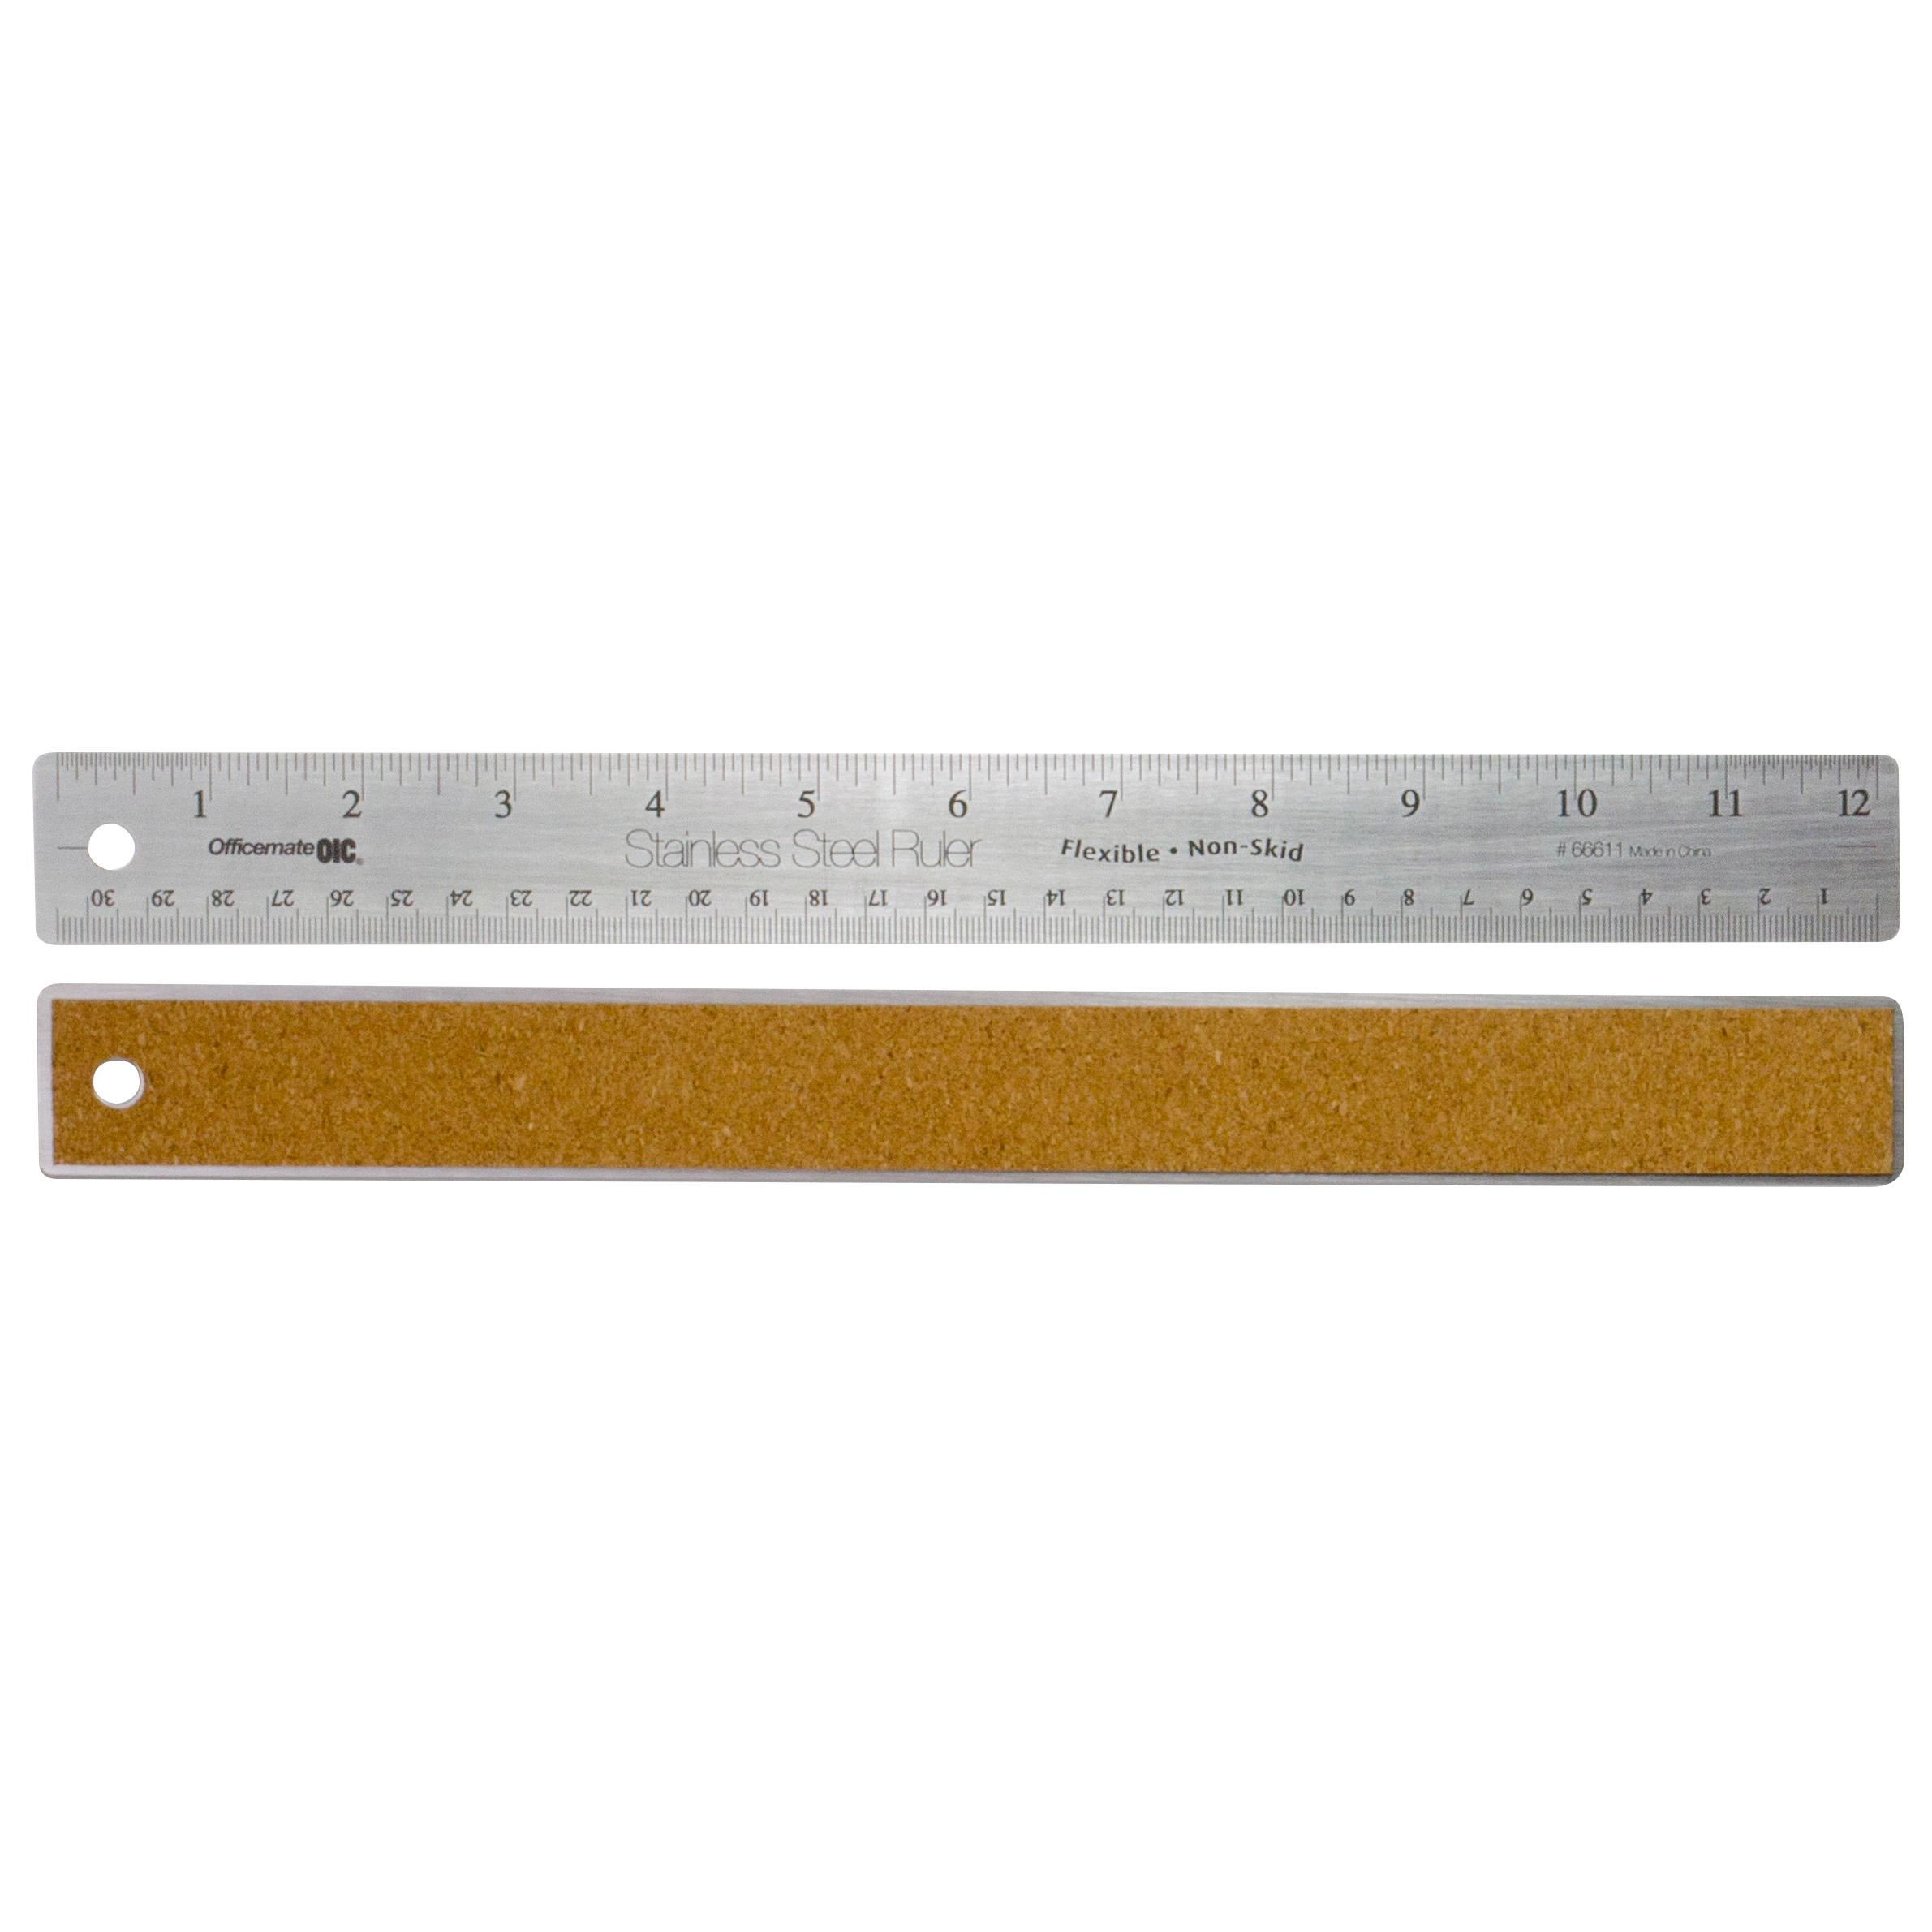 how to use a ruler for inche measurements